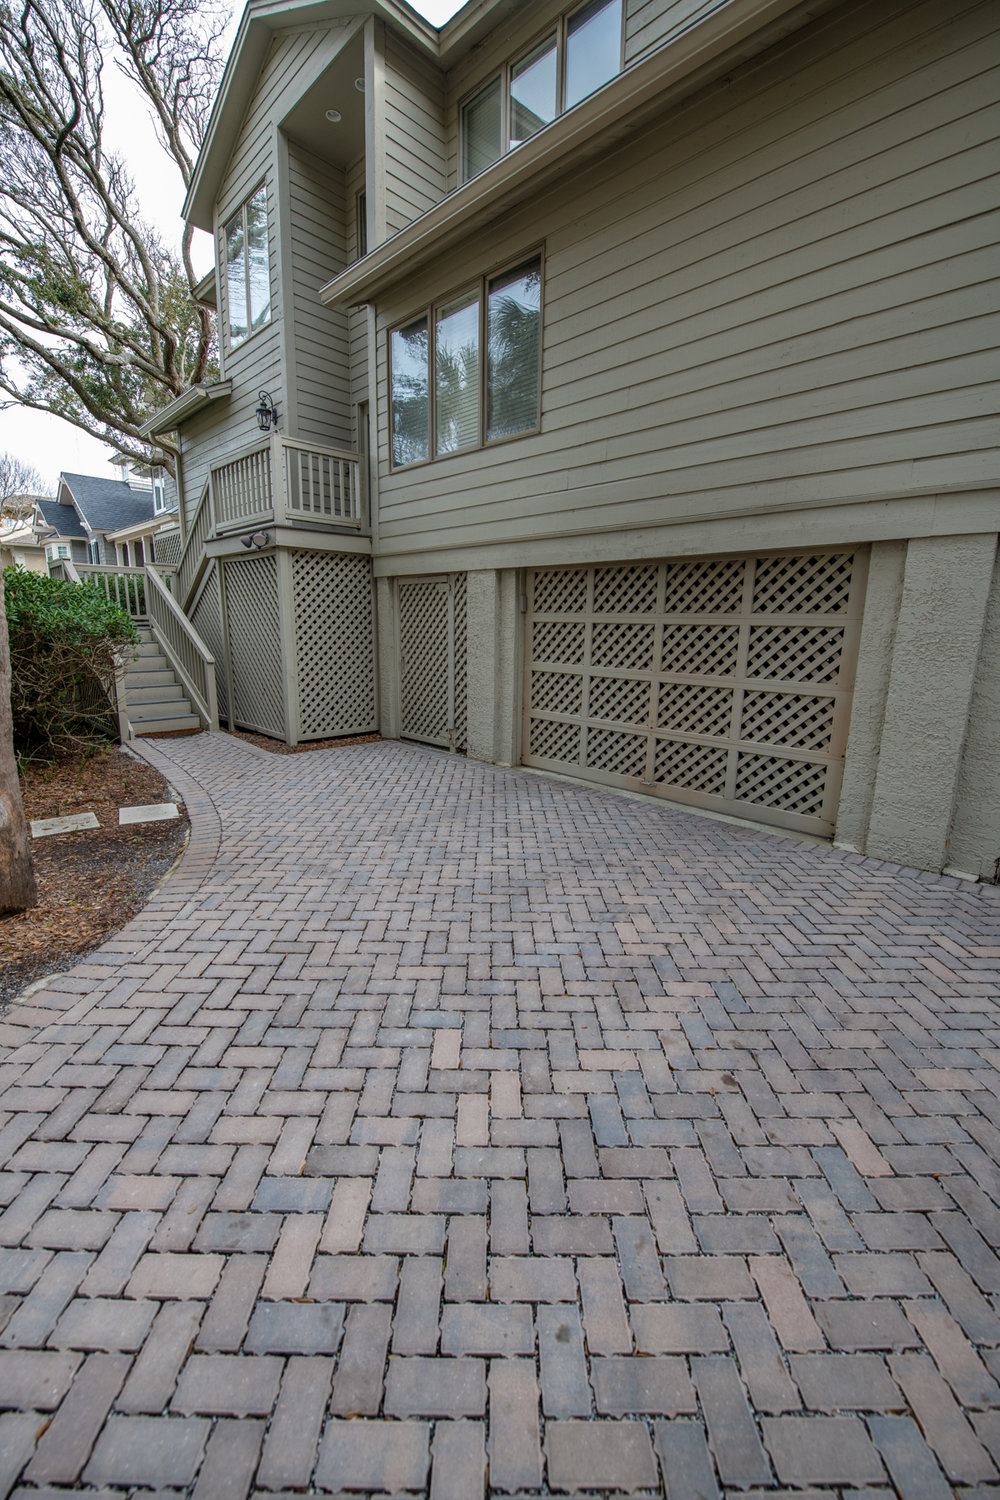 Lots of puddling in your Driveway? Install    Permeable Pavers   ! These Eco-Friendly pavers help with storm water run-off, offer superior permeability and of course - beautification!